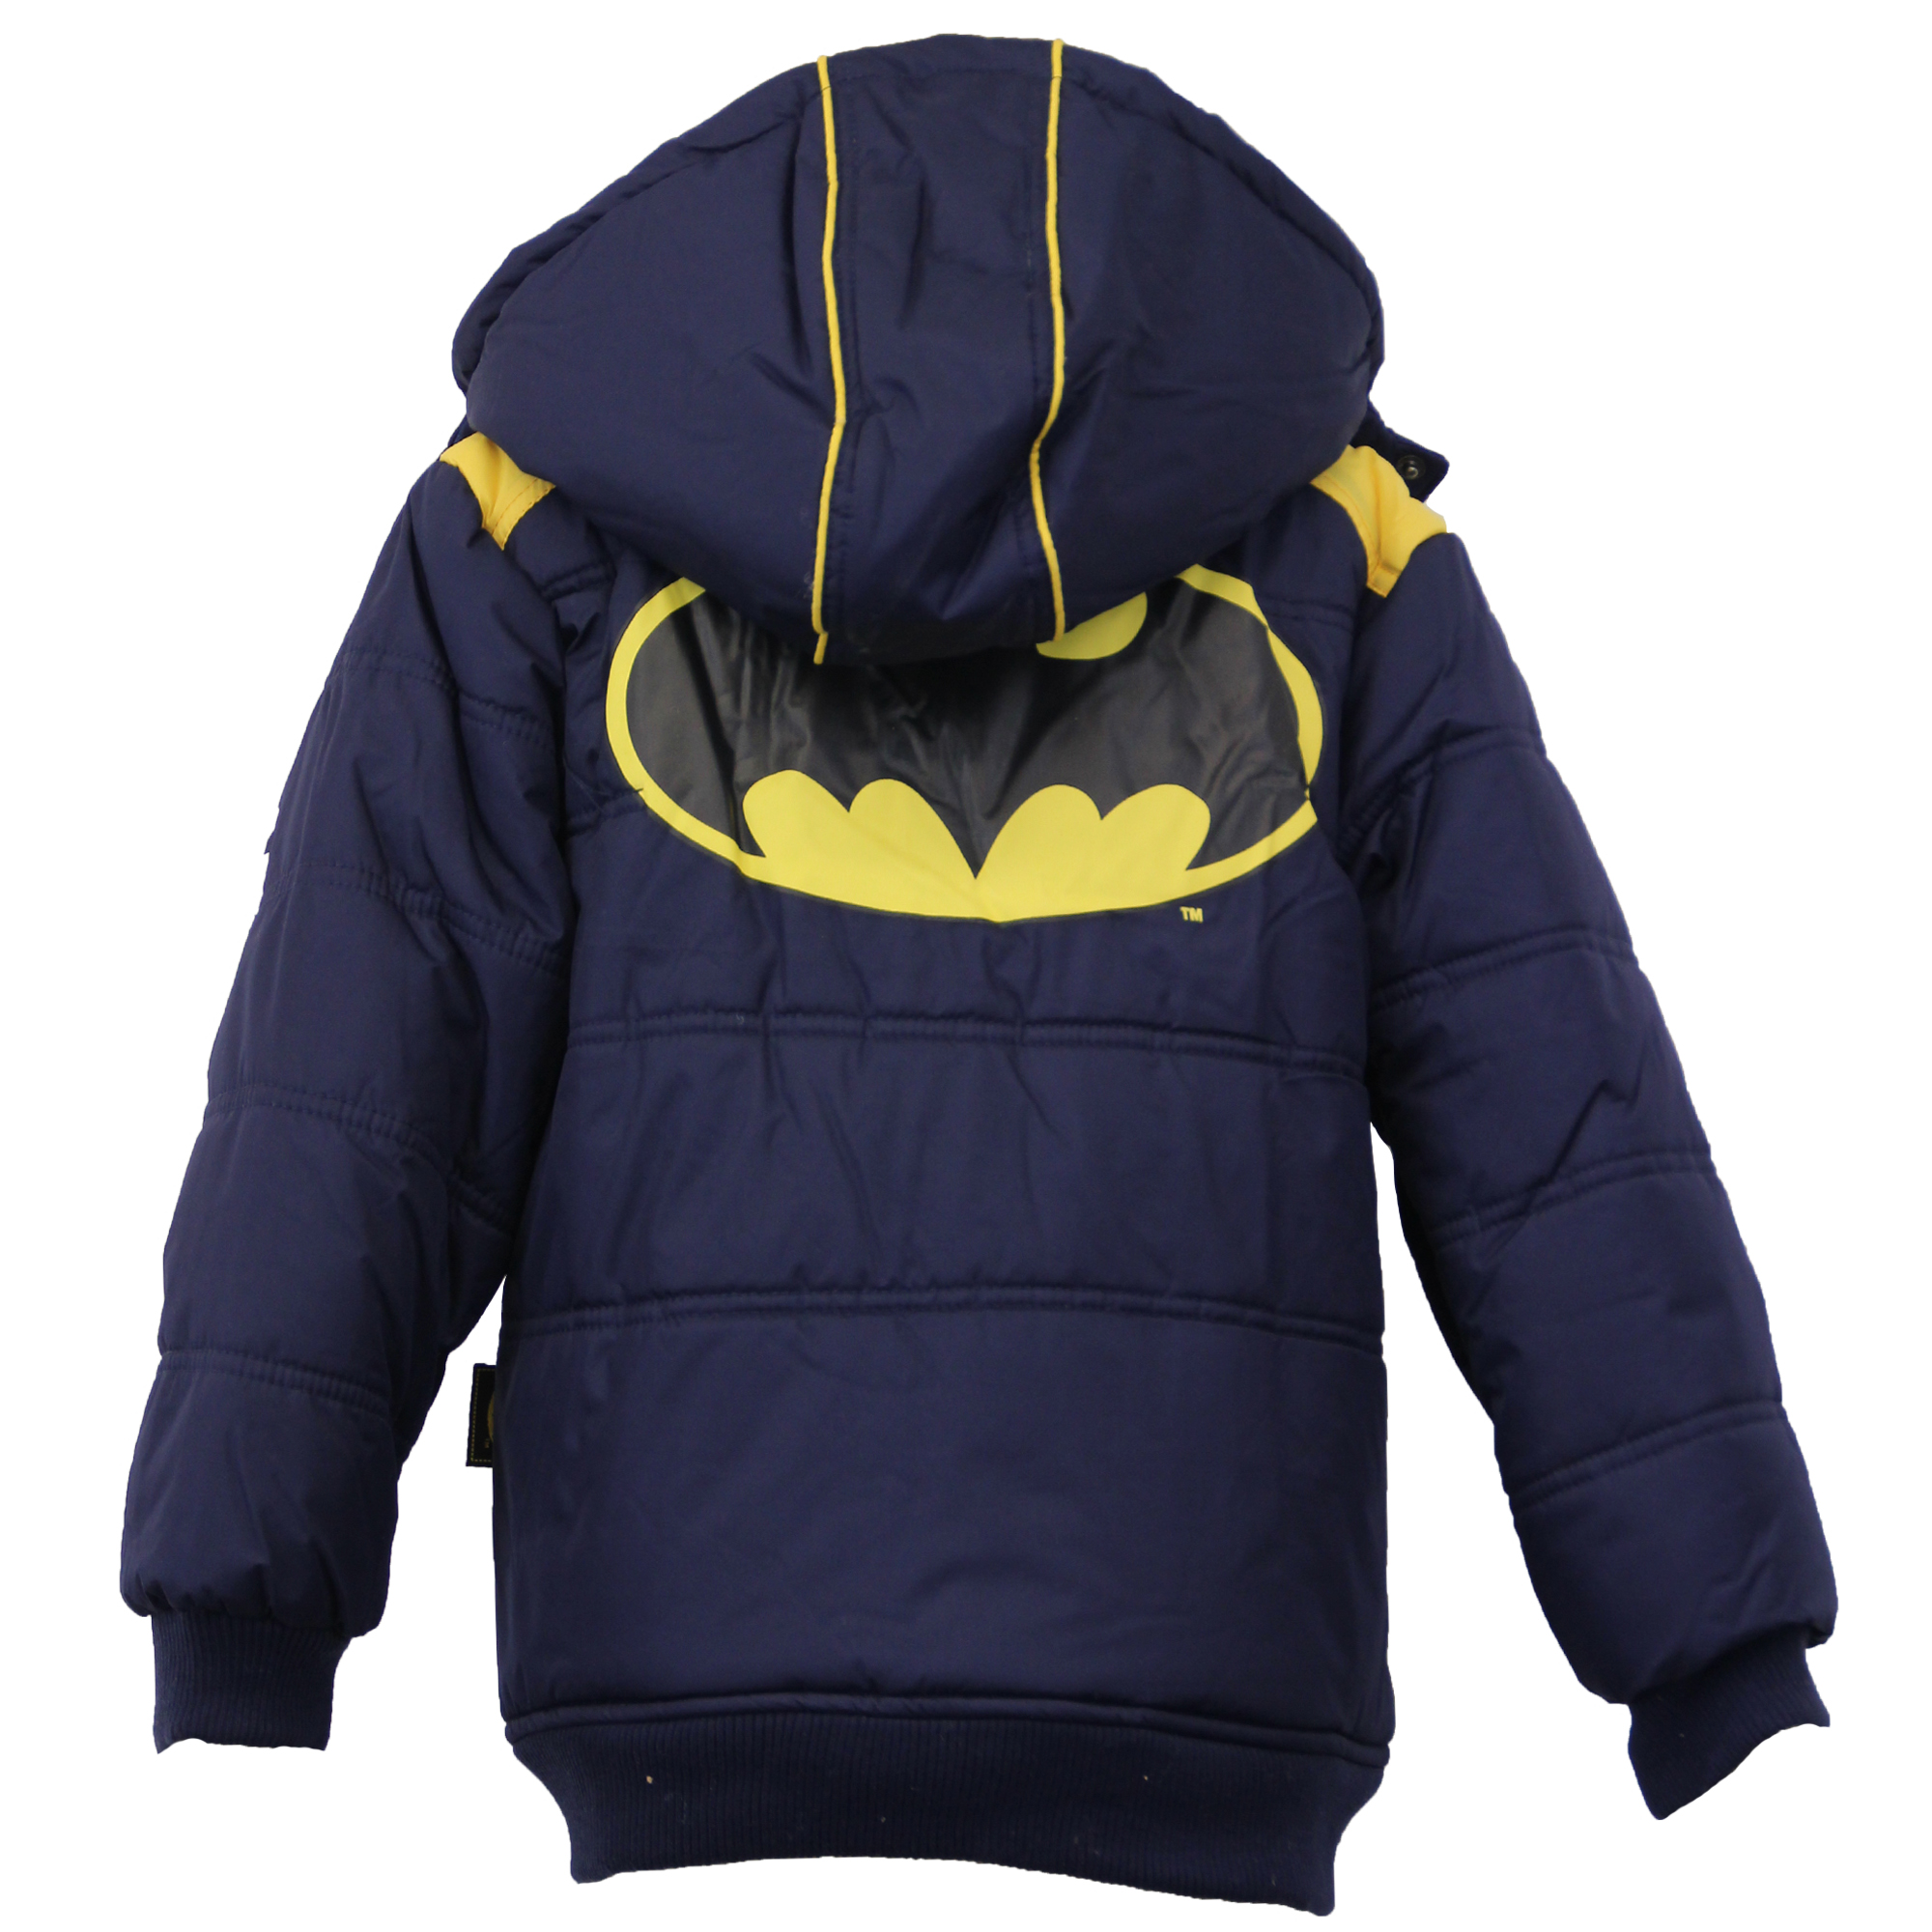 Boys' Outerwear: Free Shipping on orders over $45 at bonjournal.tk - Your Online Boys' Outerwear Store! Overstock uses cookies to ensure you get the best experience on our site. If you continue on our site, you consent to the use of such cookies. Boys Hoodie Winter Jacket Kids Zip-Up Sweater Pulla Bulla Sizes Years. 7 Reviews.